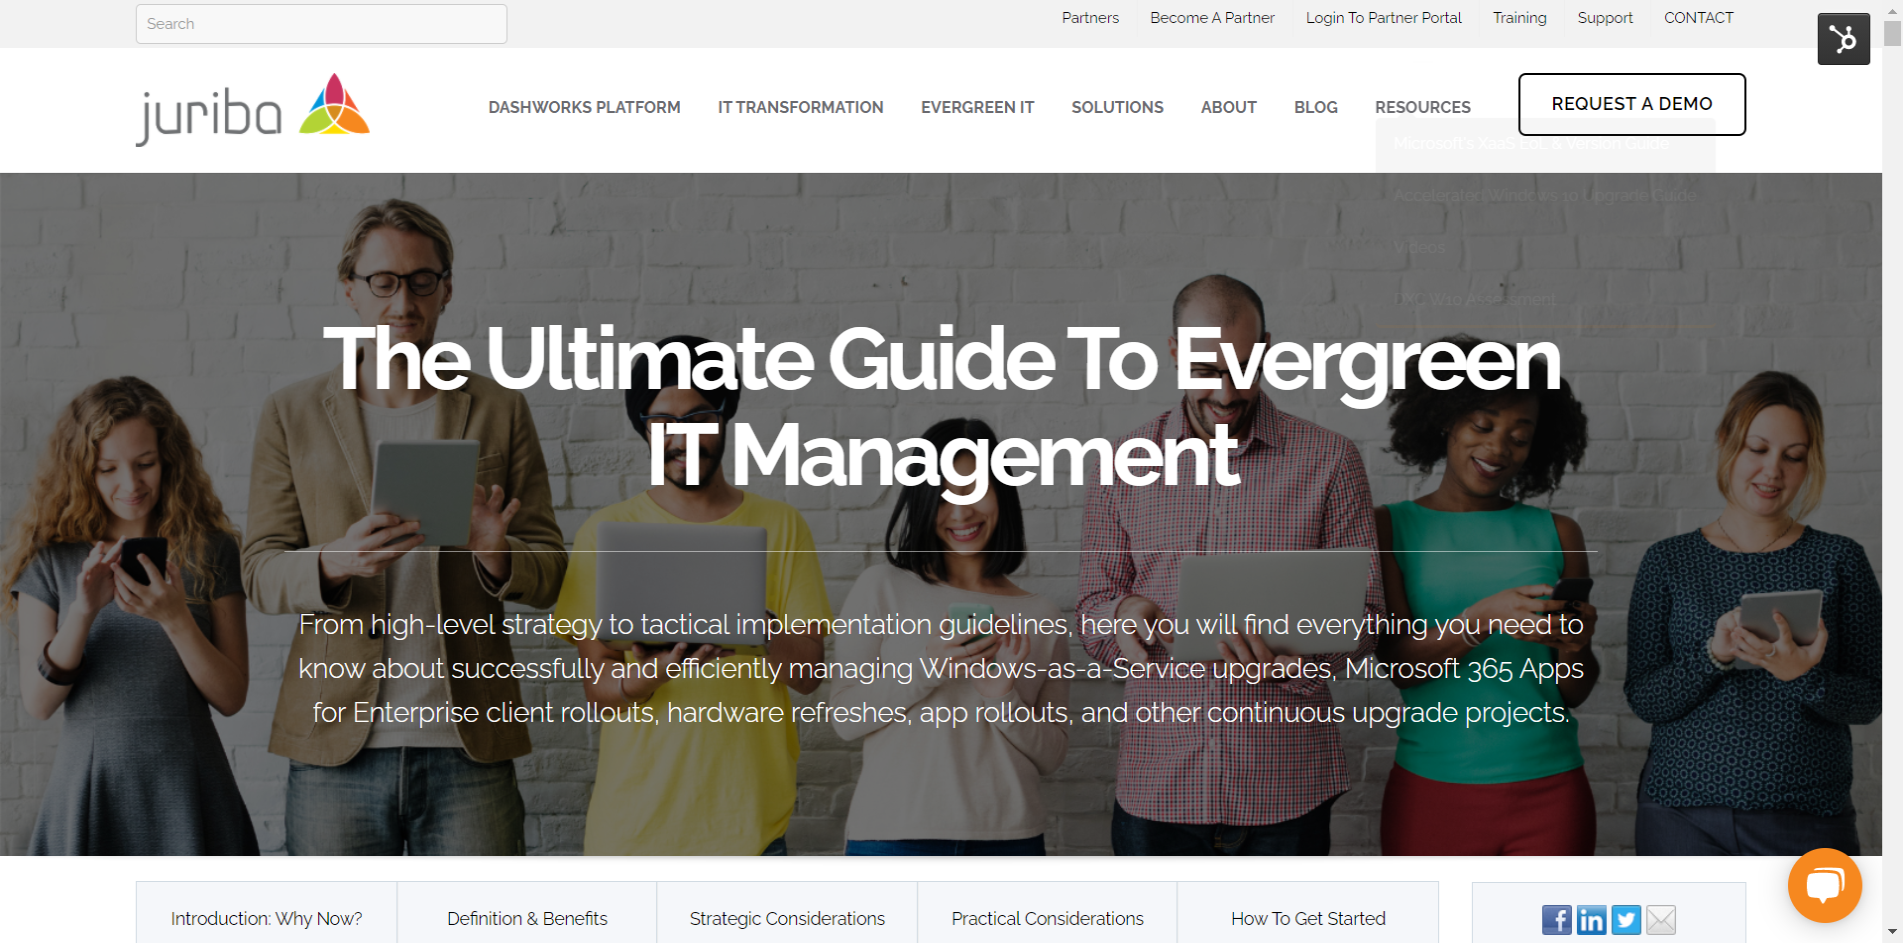 The-Ultimate-Guide-To-Evergreen-IT-Management